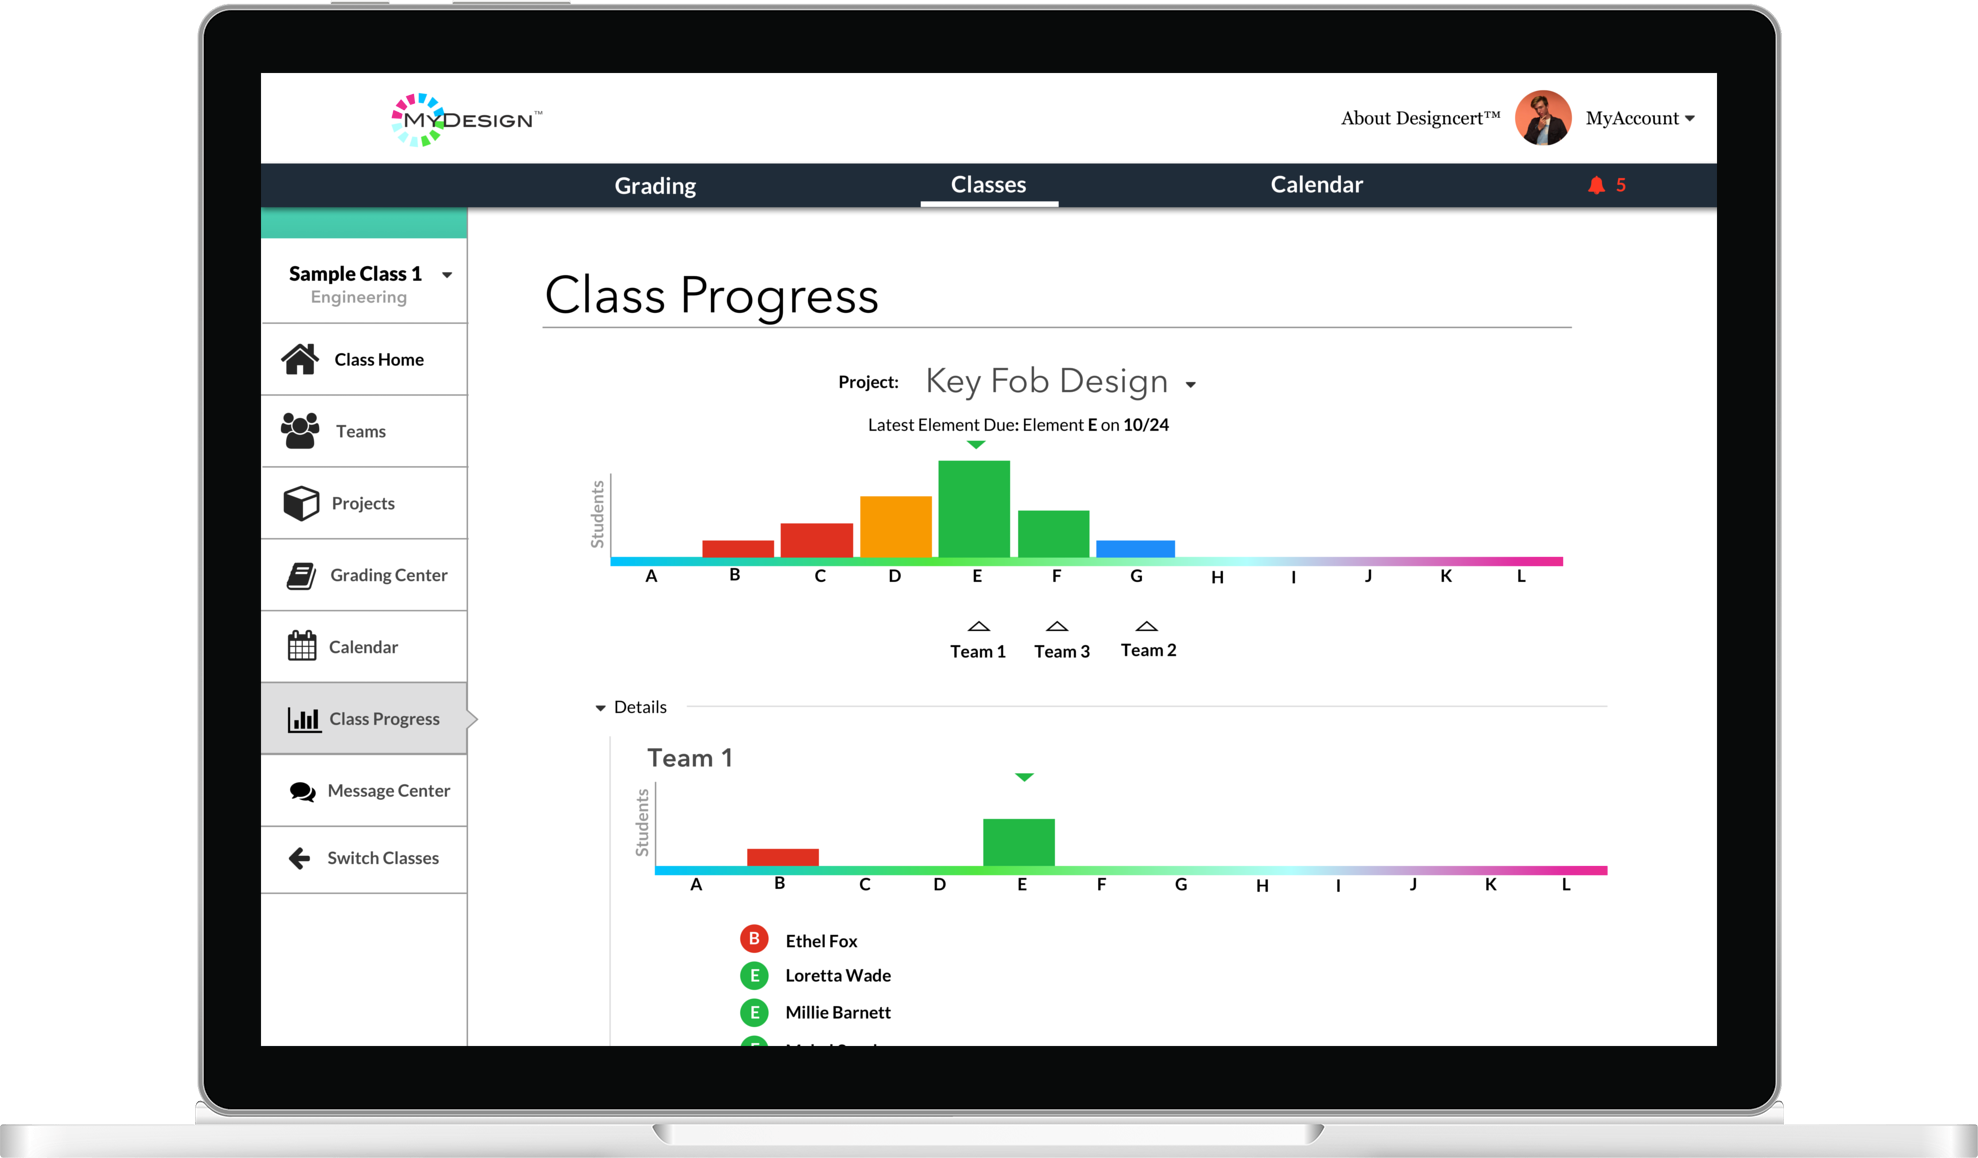 MyDesign Education Platform - 2016A Professor on campus had done 10 years of research to develop a project-based learning framework.I helped his team design the UX of an online learning management system around this framework.